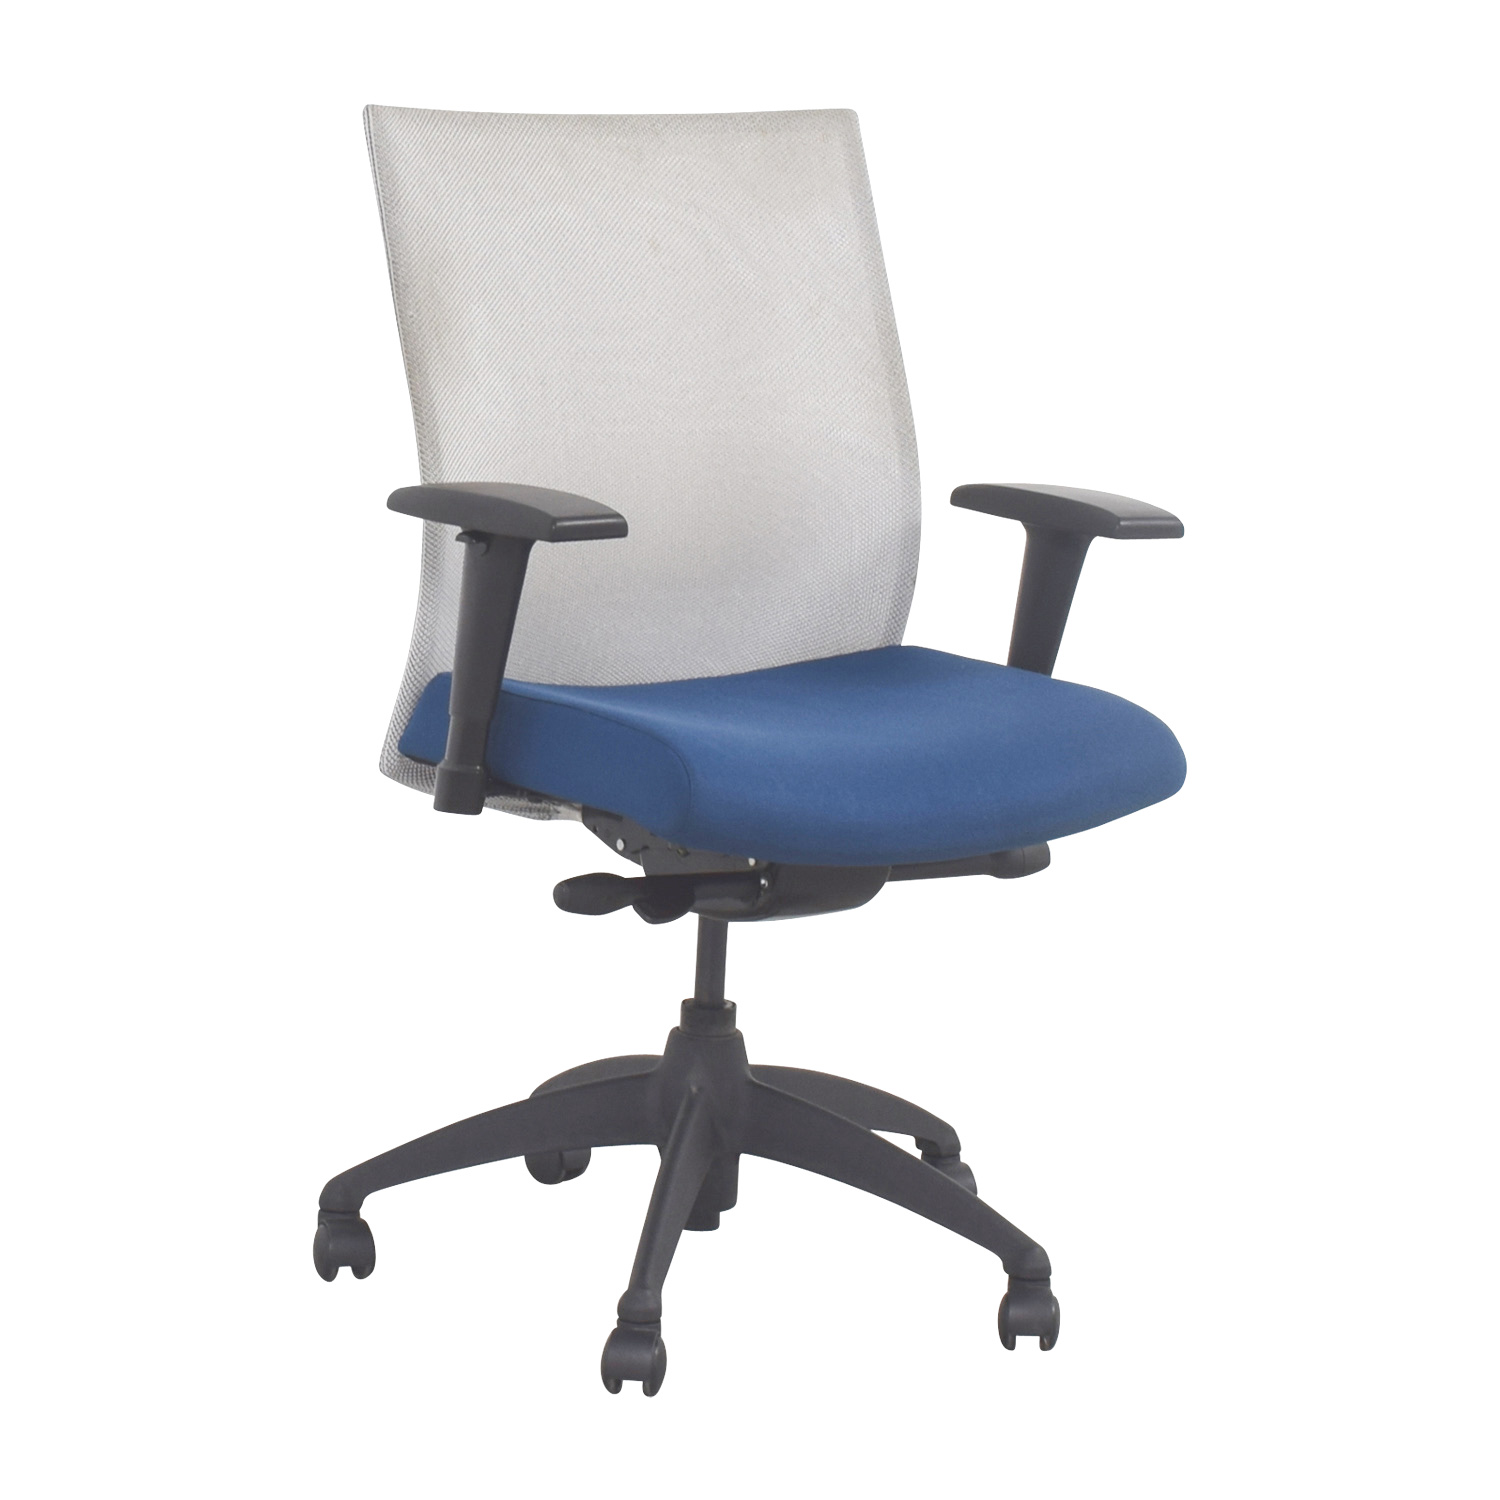 ... Buy Stylex Blue Adjustable Arms Task Chair Stylex ...